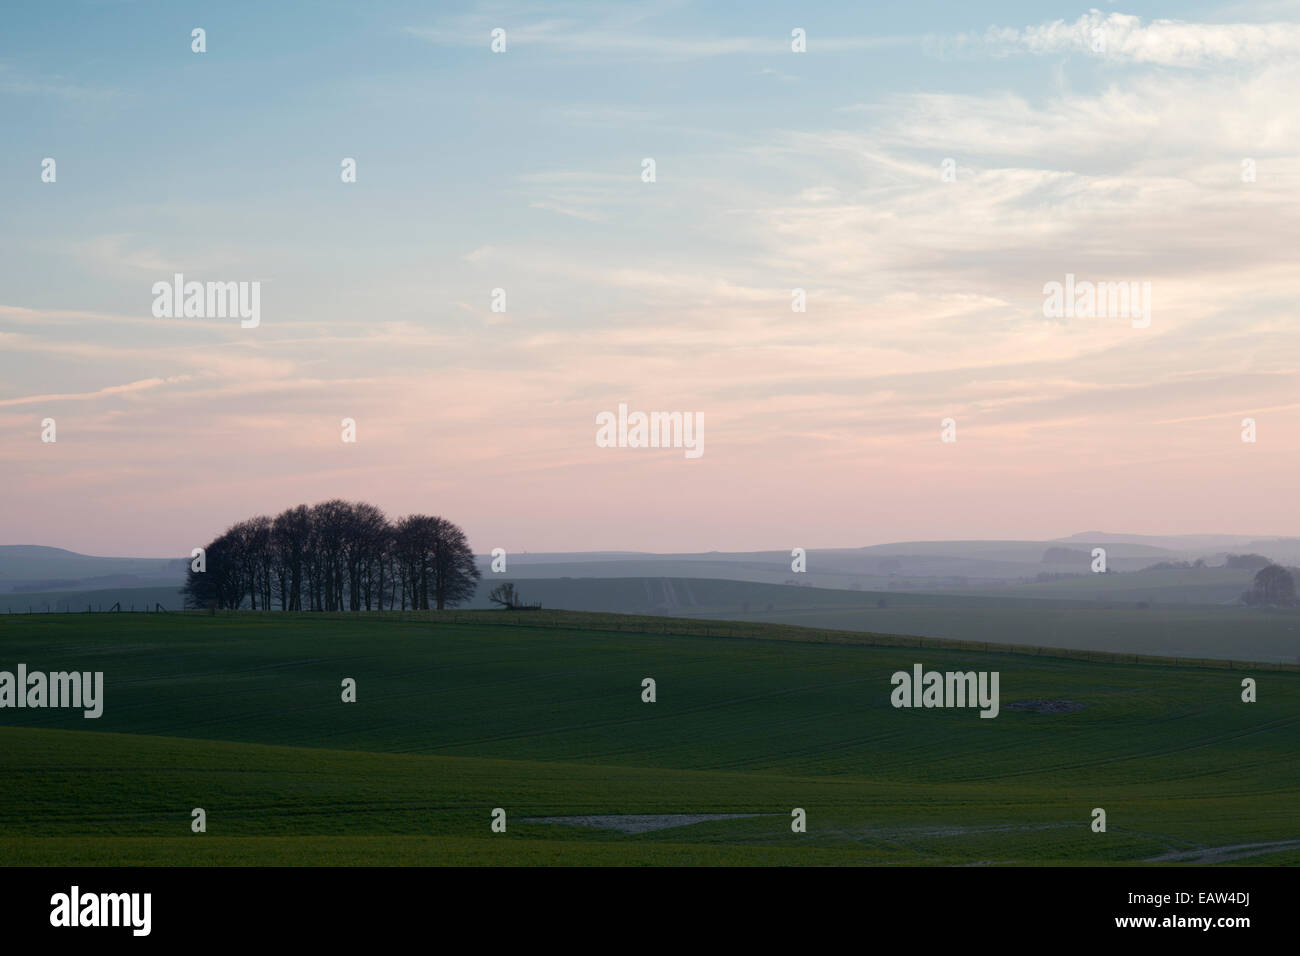 Early spring evening in the Wiltshire countryside, Avebury, UK Stock Photo